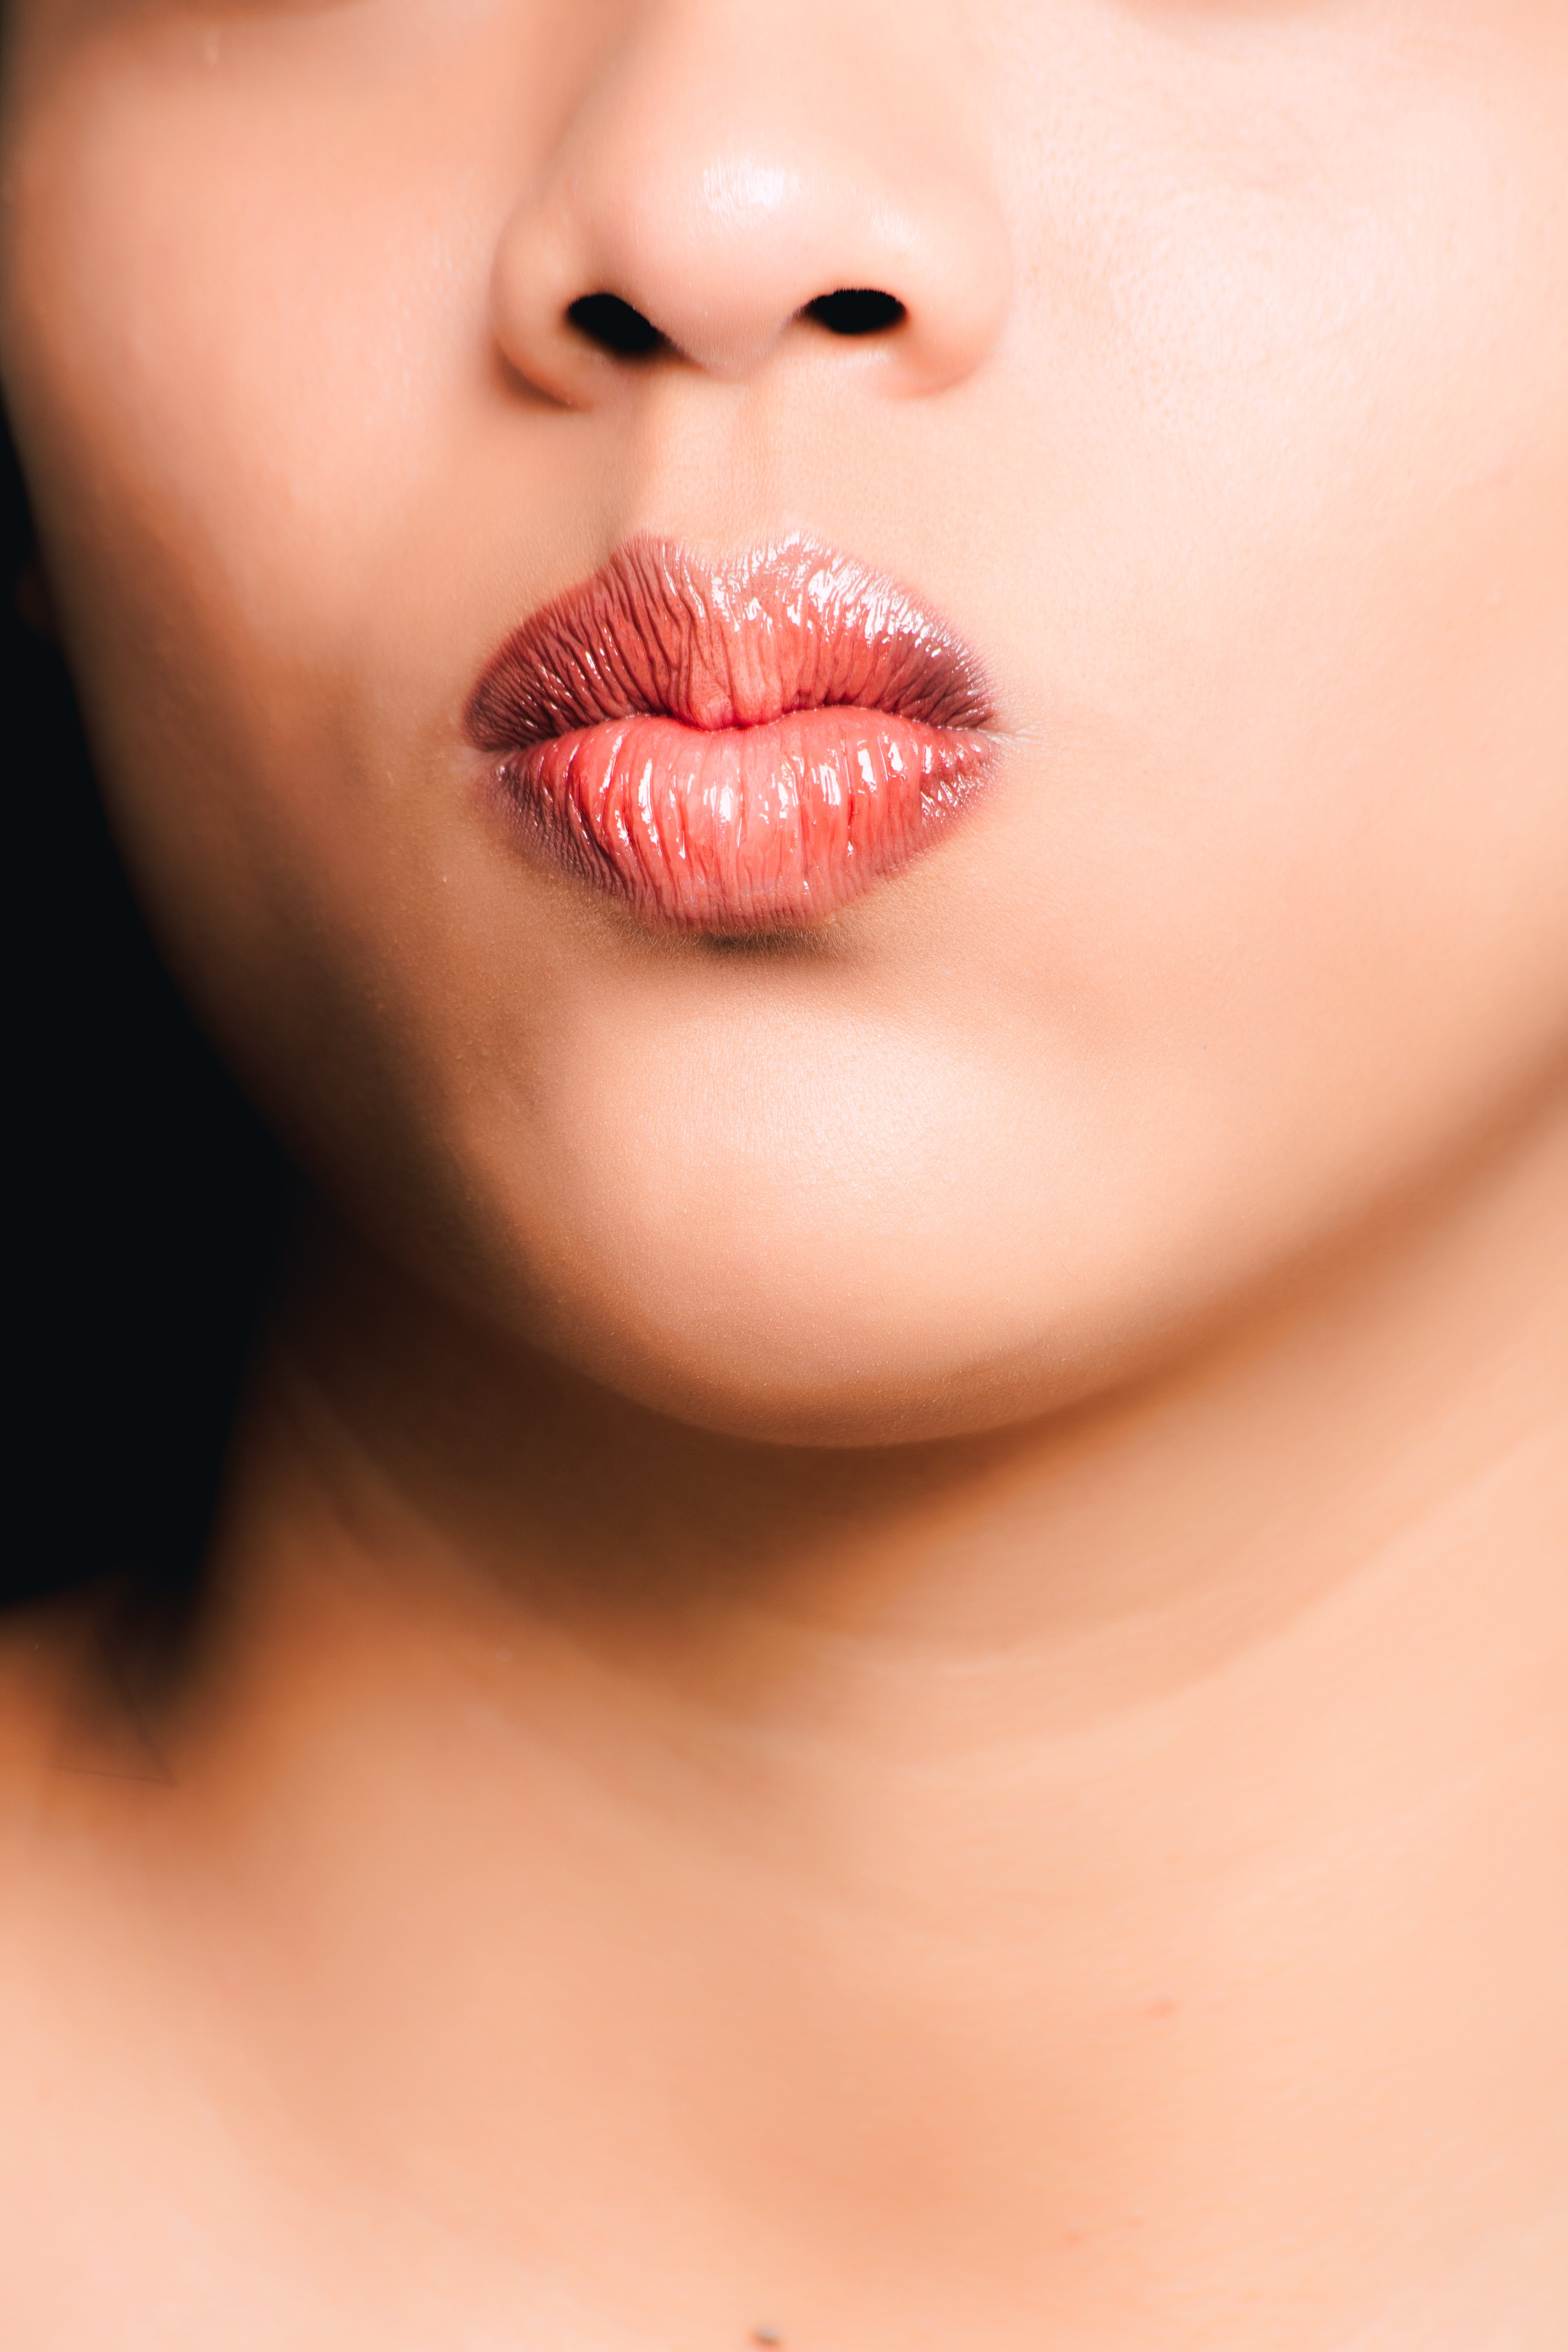 Woman's Red Lips